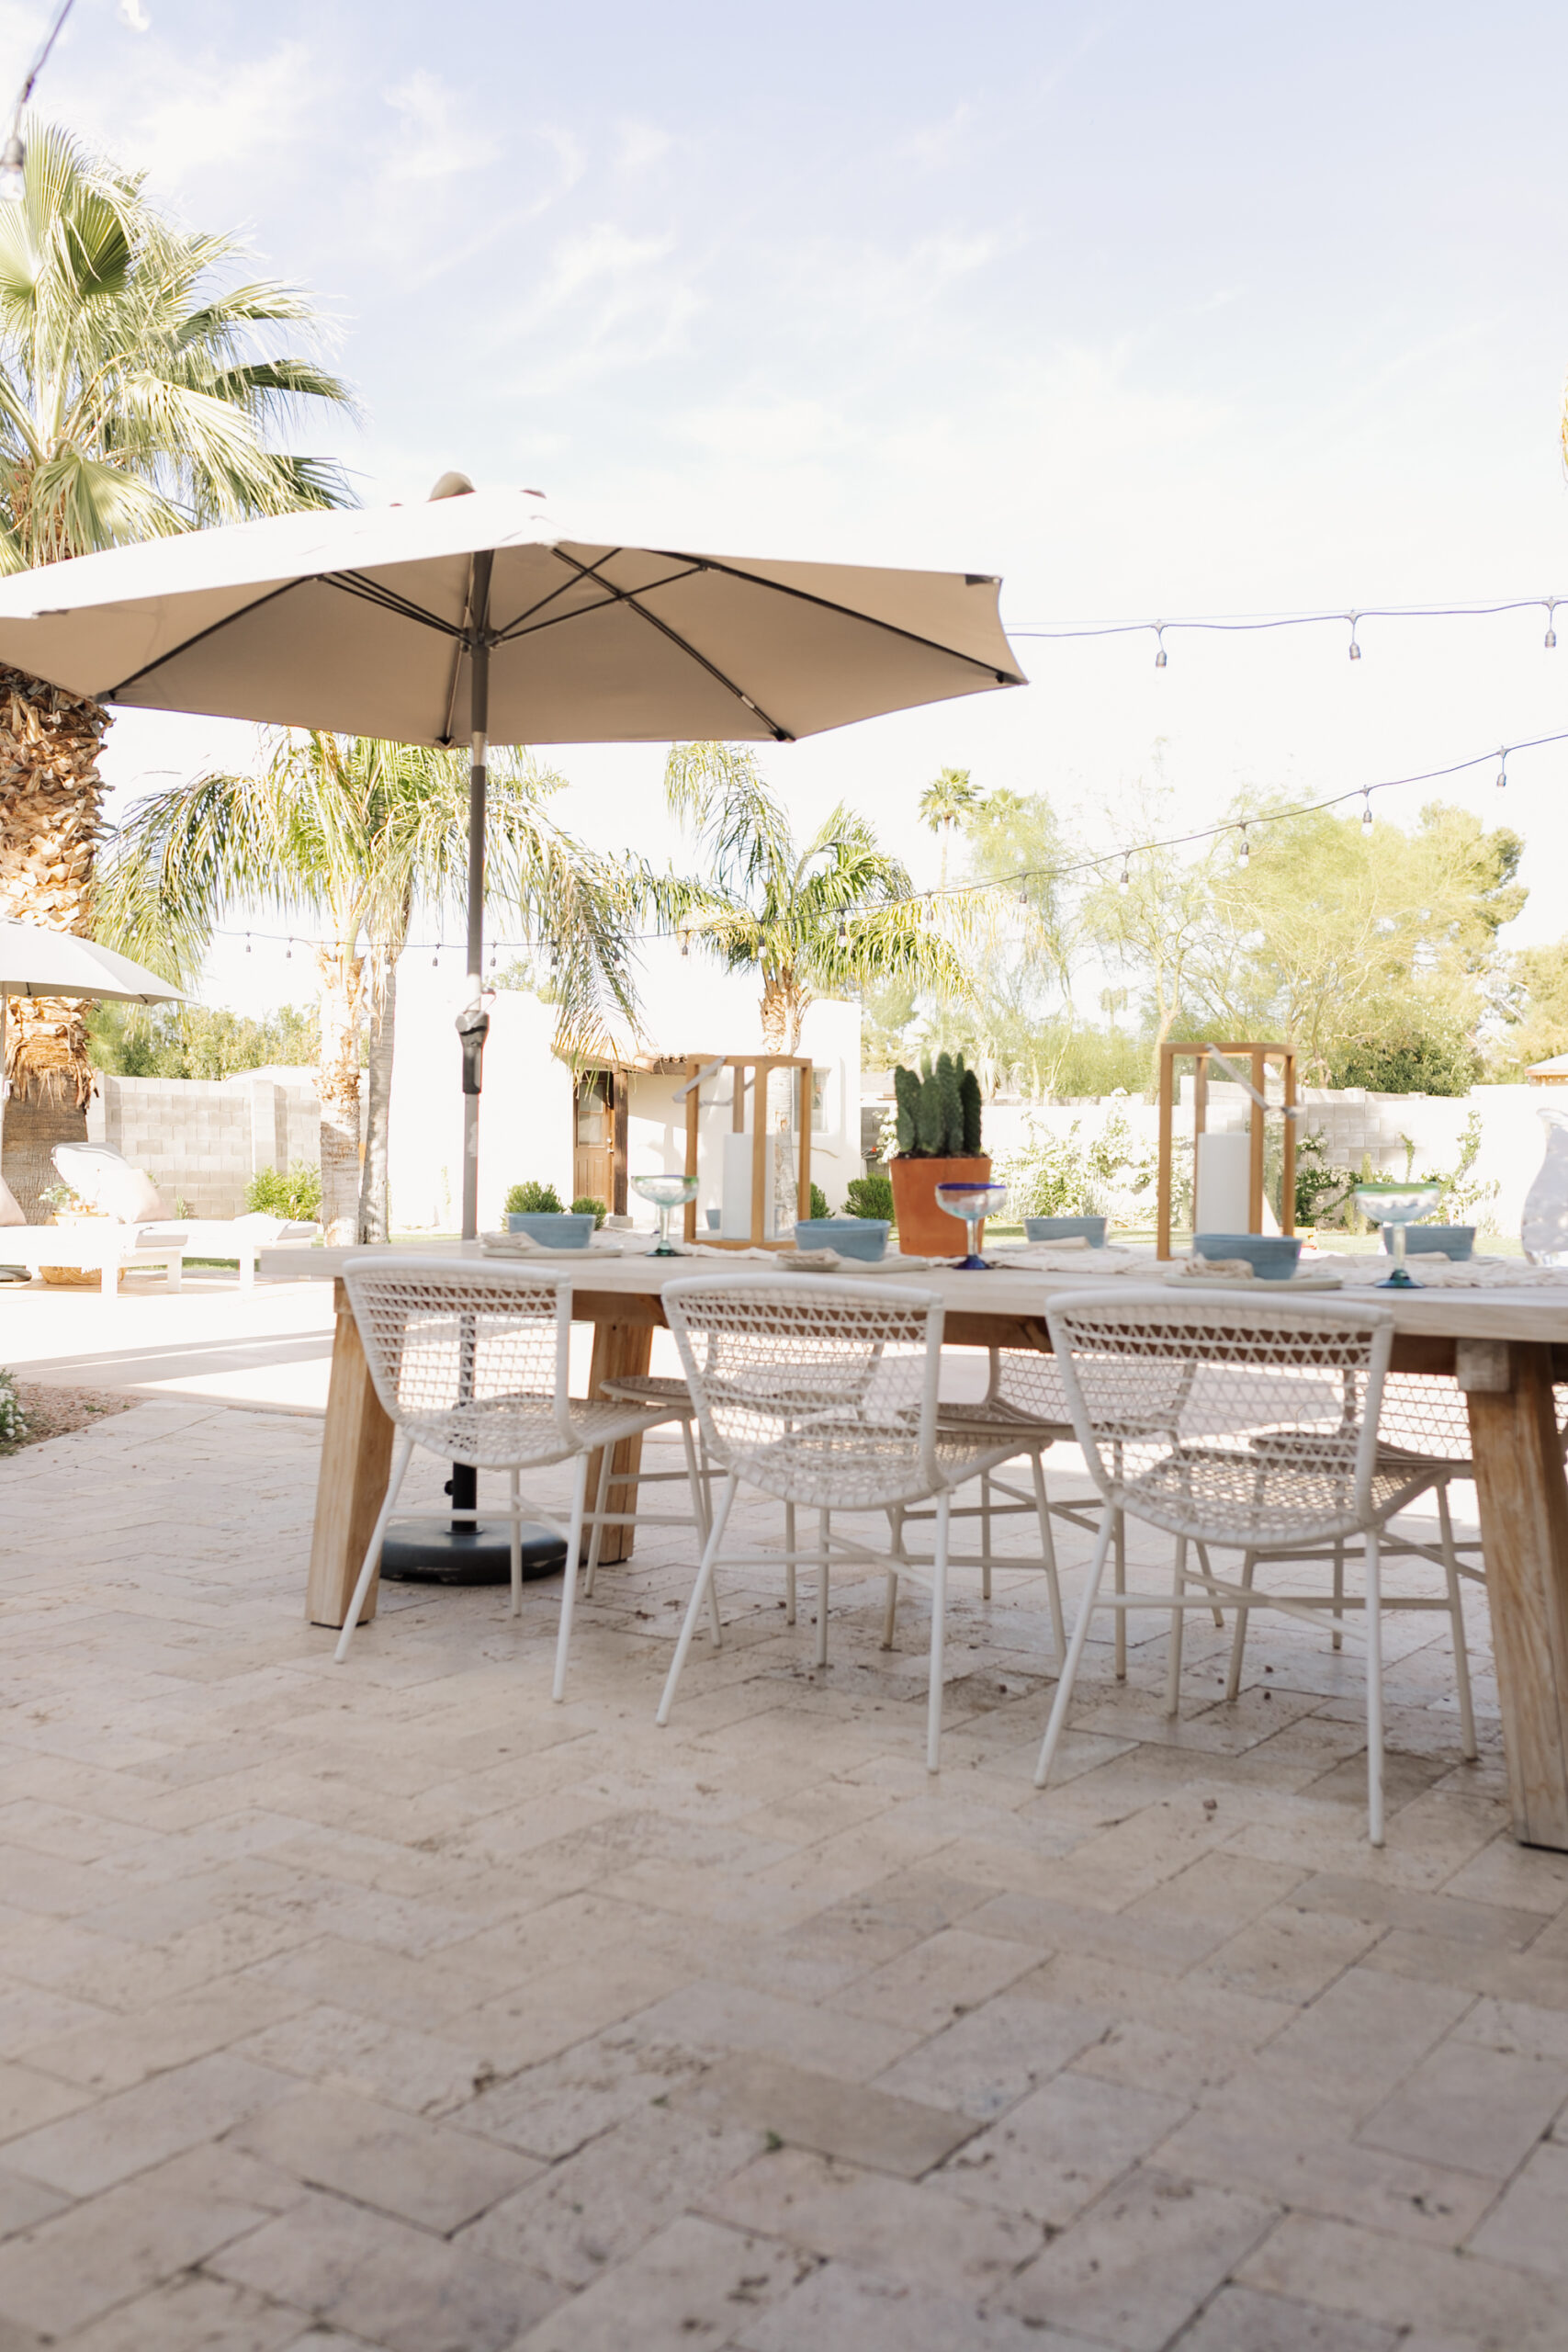 we love eating out here in the warmer months #ourarticle #outdoordining #backyardliving #salachair #teakatable